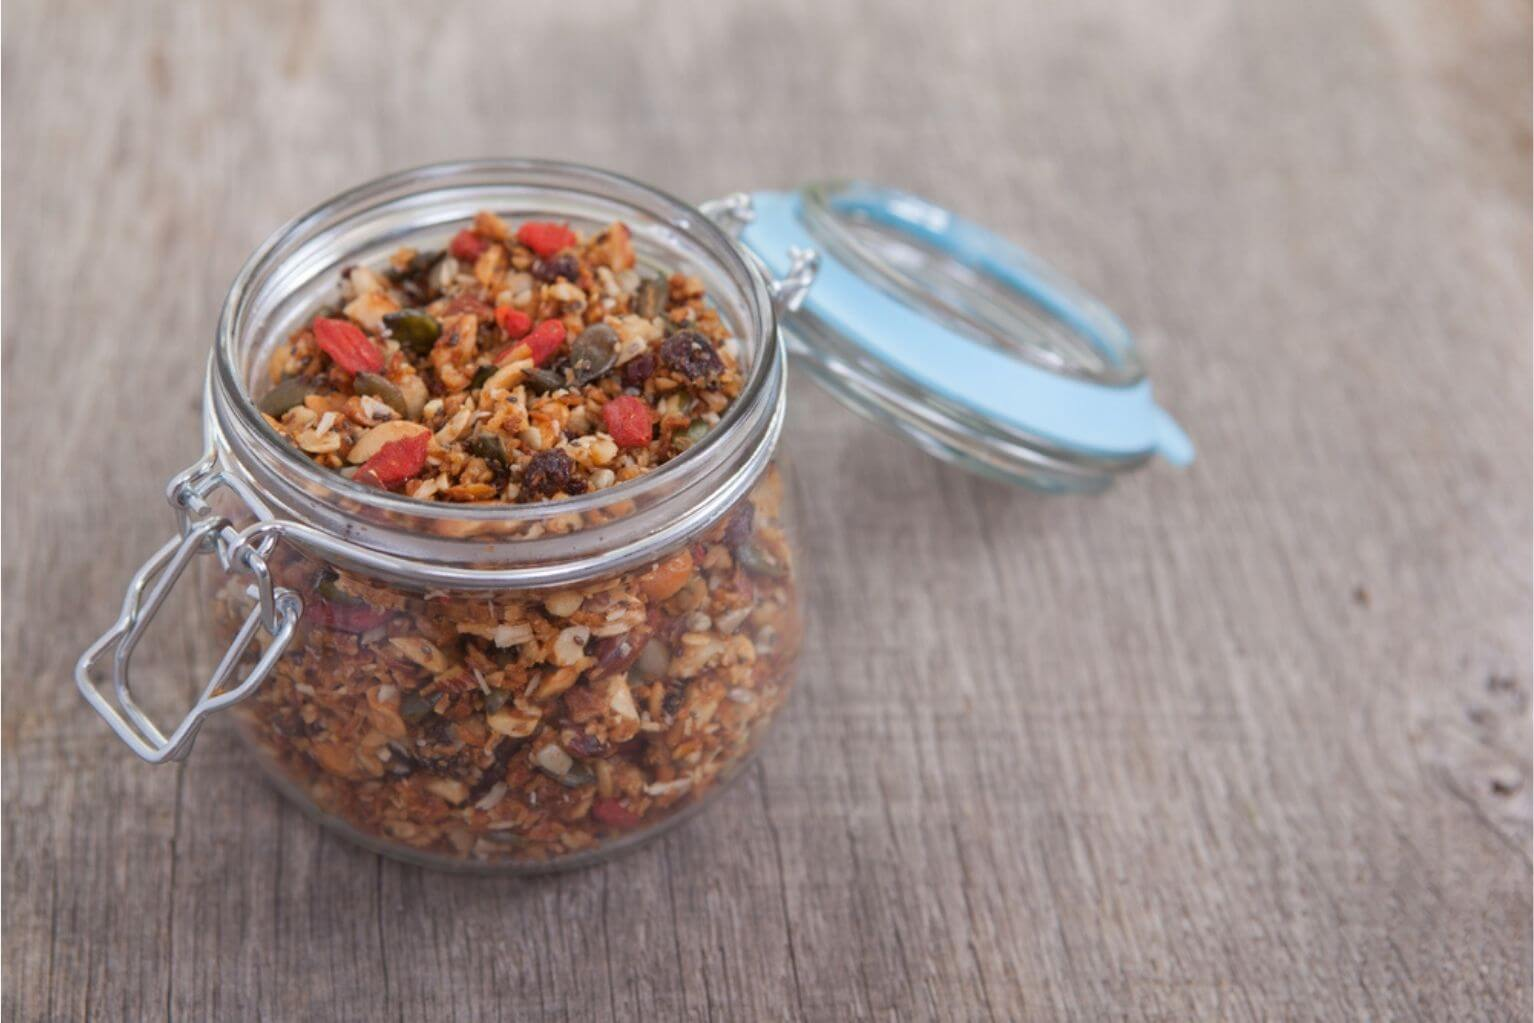 Grain-free granola made with mixed nuts, seeds, raisins, coconut flakes, chia, and coconut seeds in a glass jar on a wooden table.